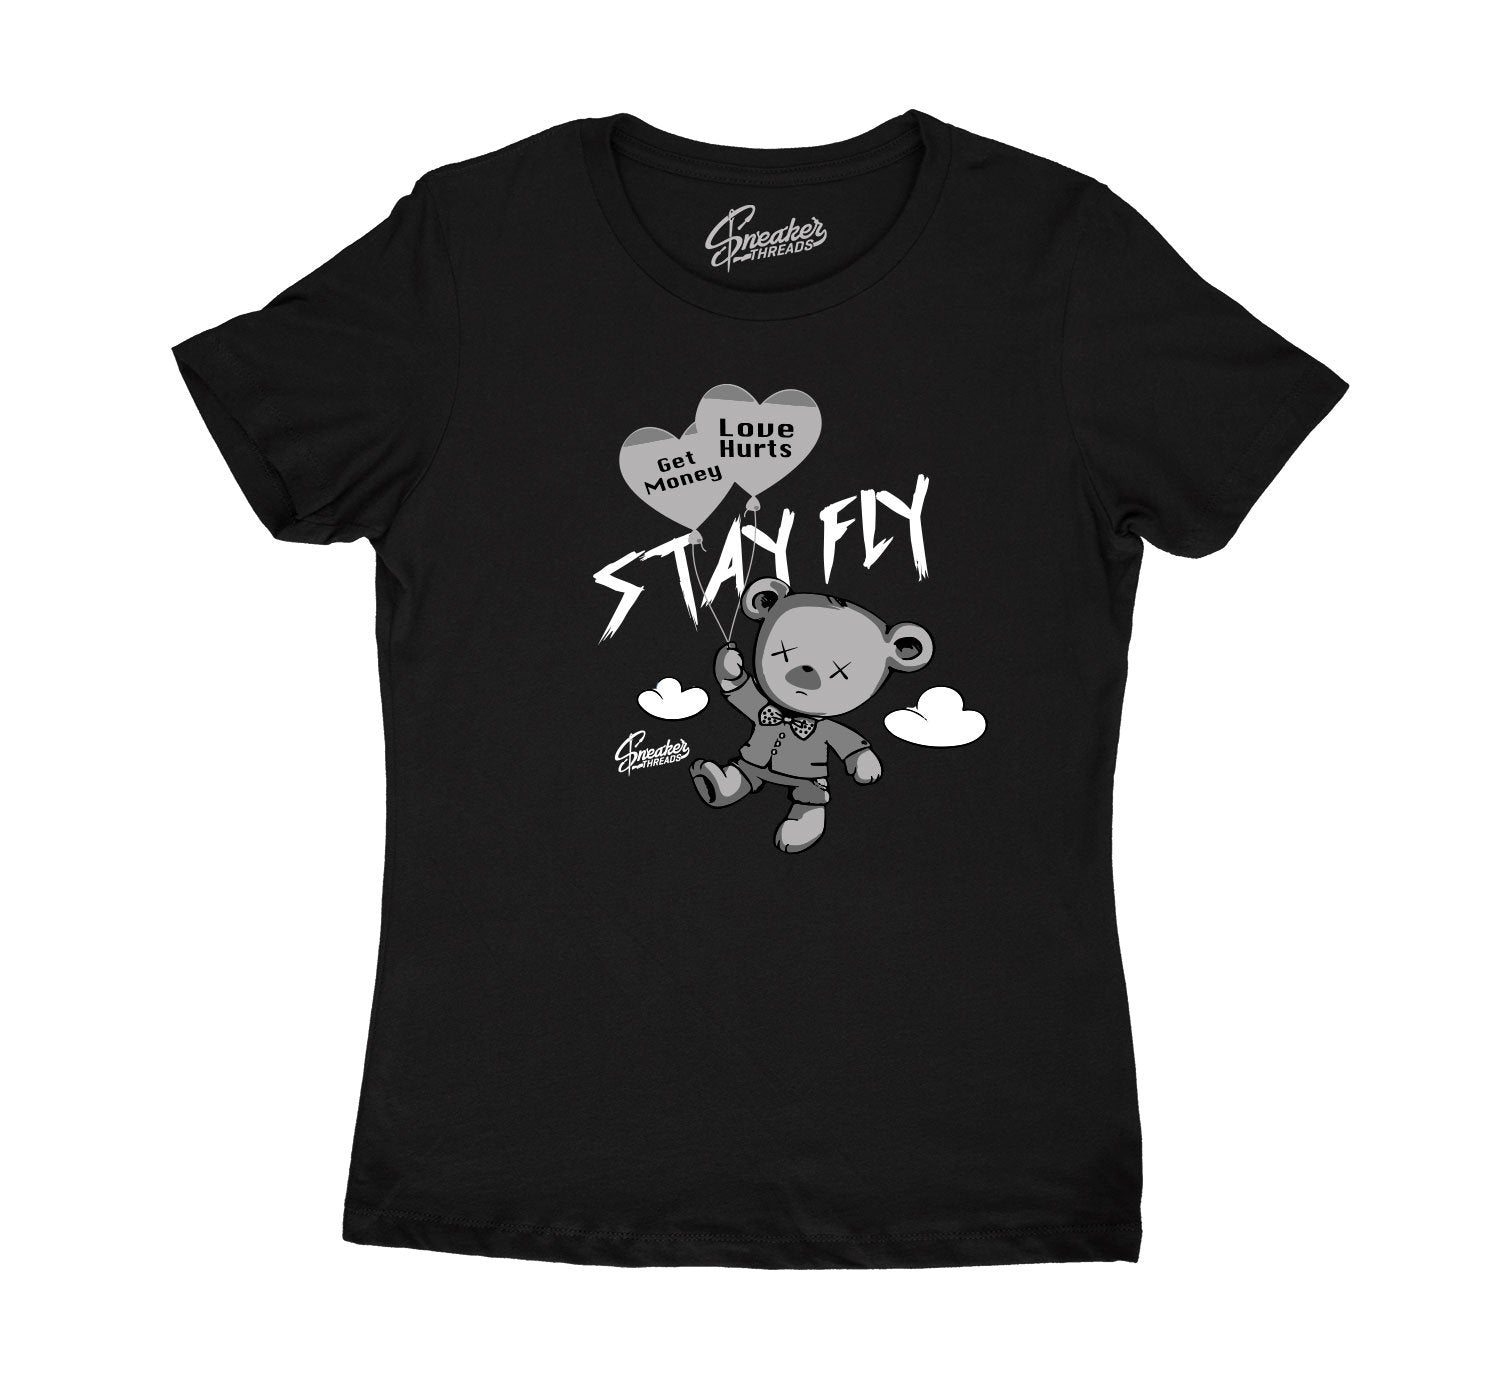 Black Cat 4s have matching t shirt collection for women